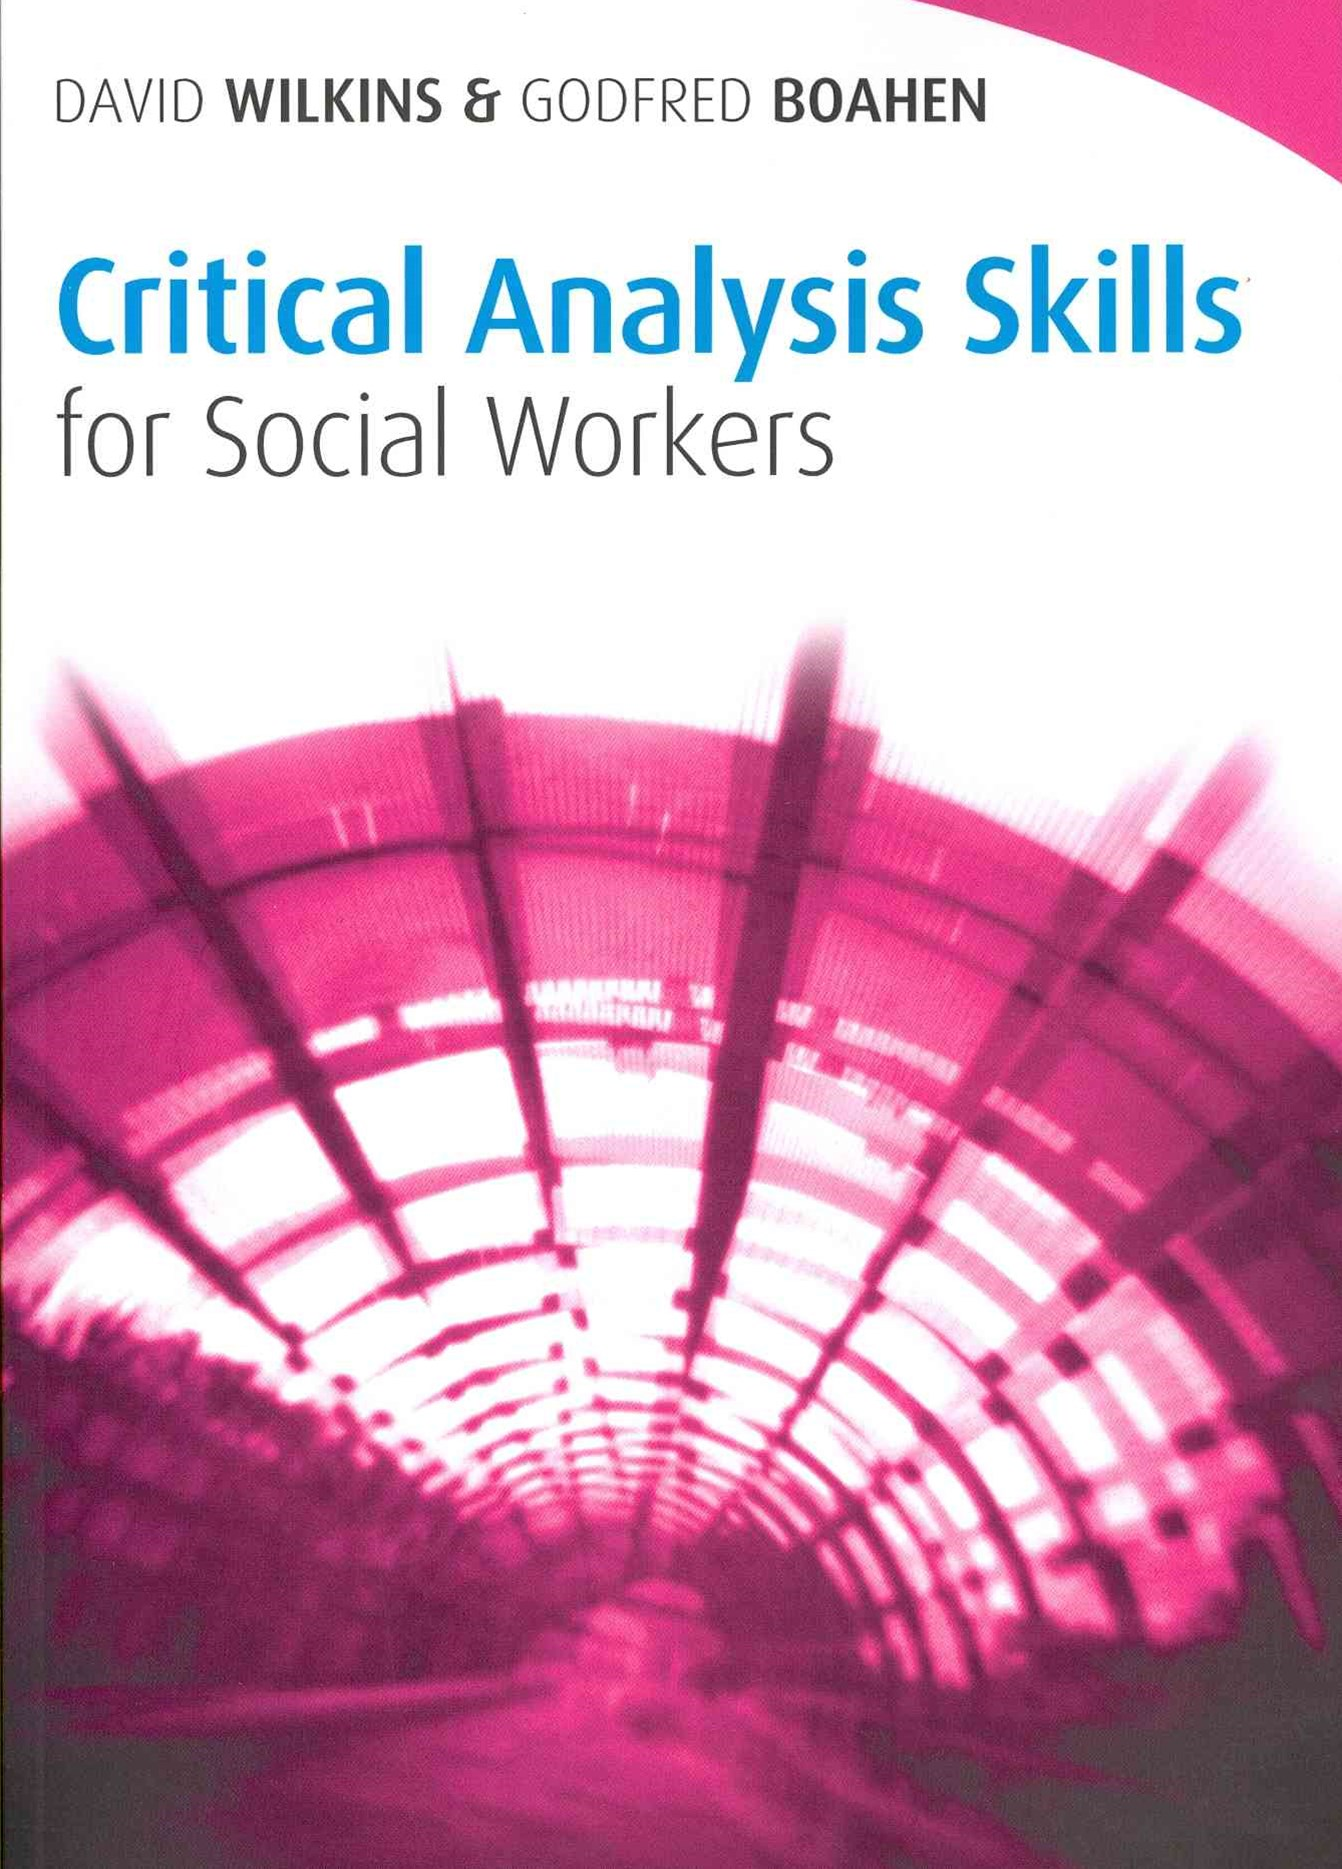 Critical Analysis Skills for Social Workers